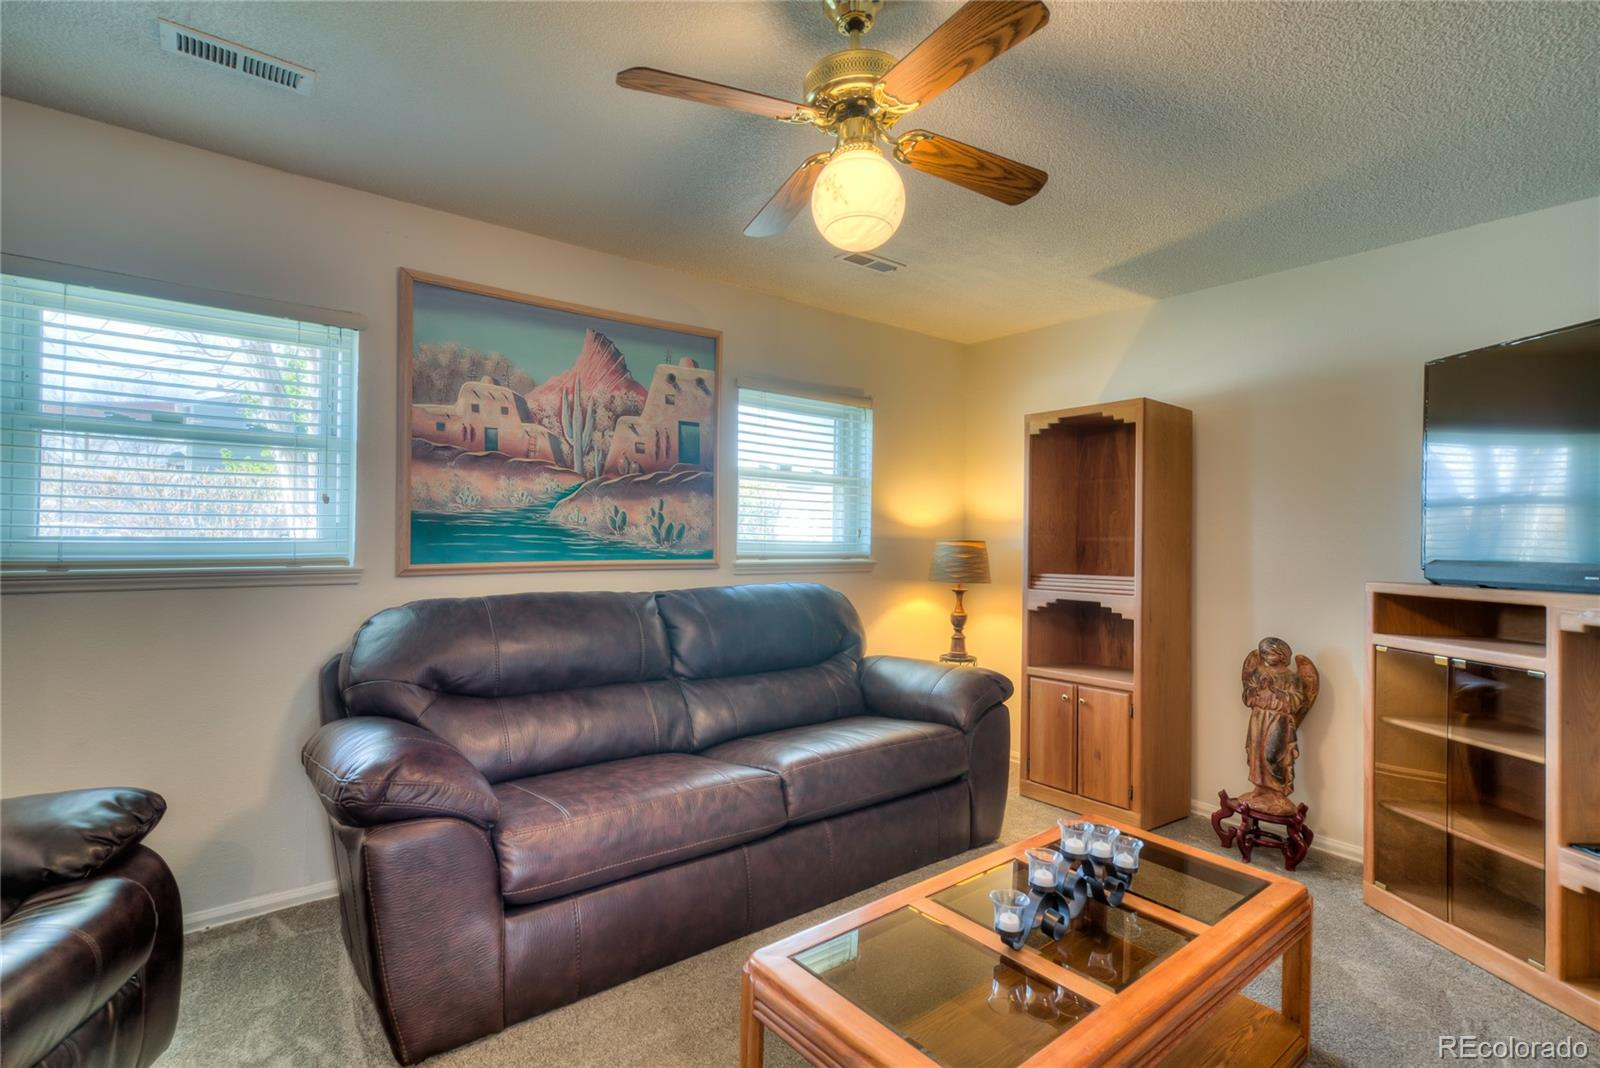 MLS# 2811379 - 18 - 9645 W David Avenue, Littleton, CO 80128